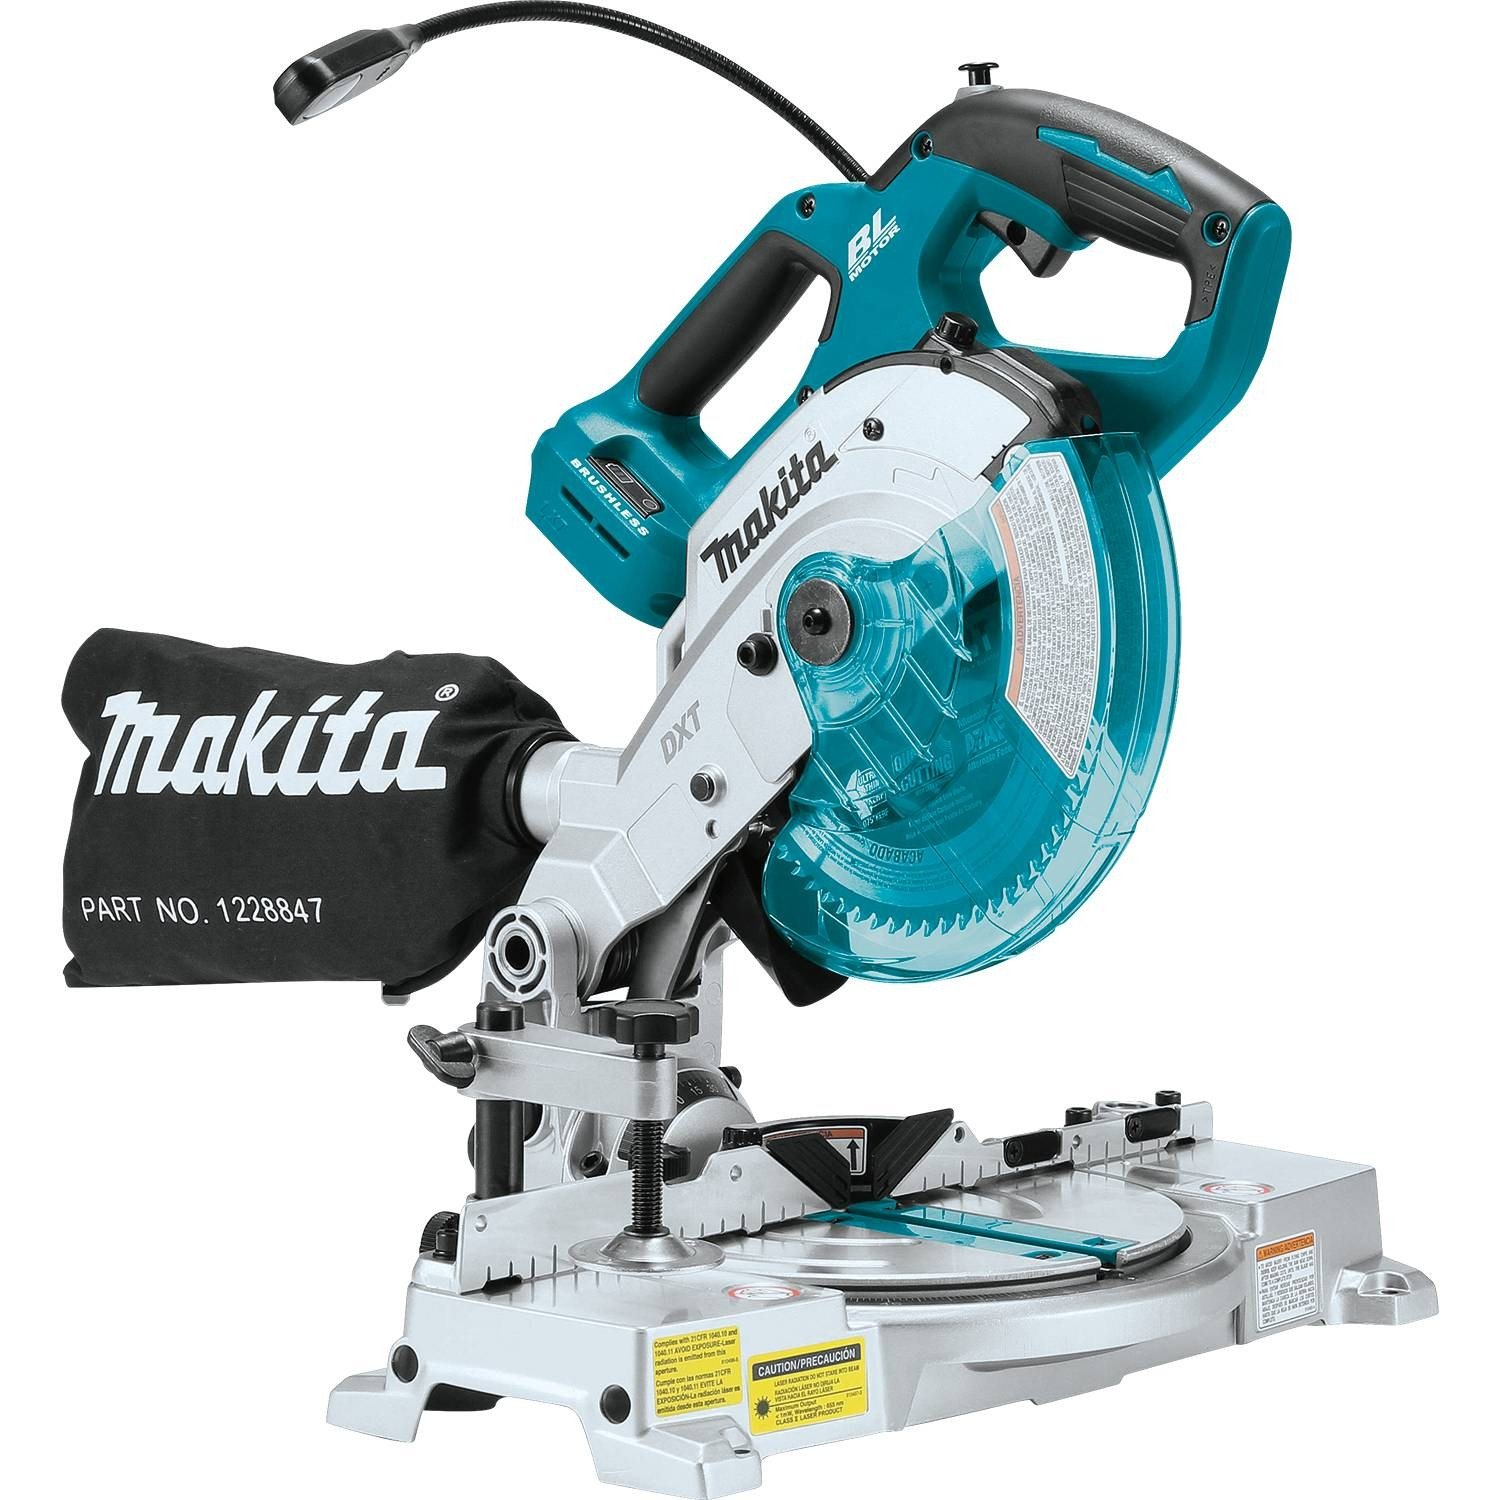 Makita XSL05Z 18V LXT Lithium-Ion Brushless Cordless 6-1 2 COMPACT Dual-Bevel Compound Miter Saw with Laser, TOOL Only